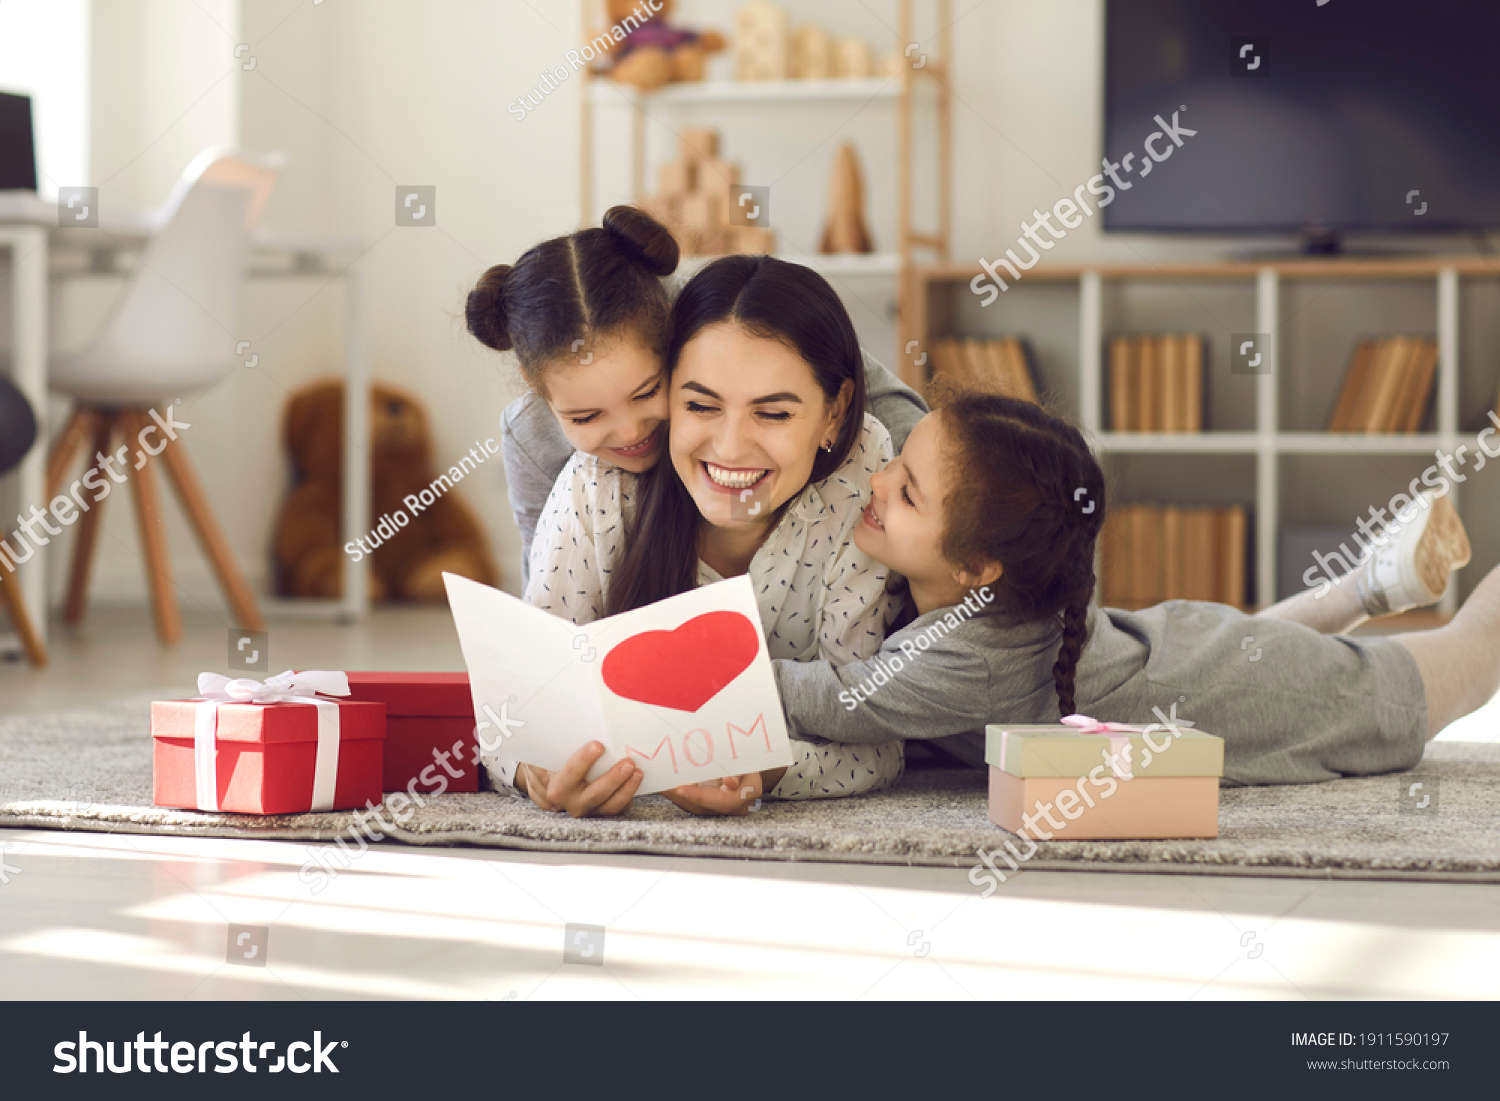 We love you. Smiling young woman getting presents from kids. Two cute twin daughters giving mom handmade greeting card. Little children lying on floor, hugging mommy and wishing her Happy Mother's Day #1911590197